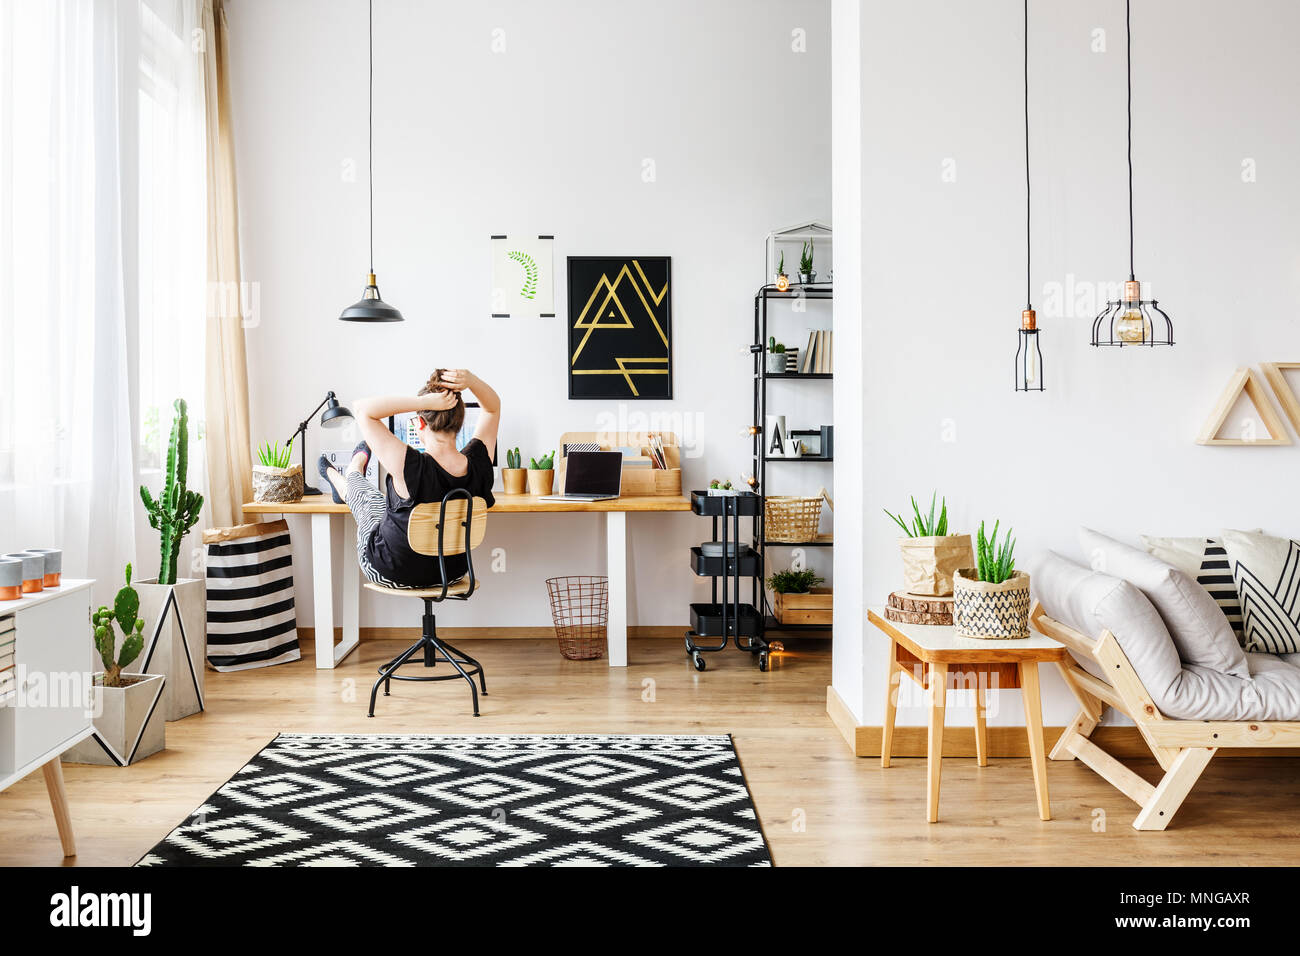 Young freelance woman working remotely at designer home in cozy white office room with pendant lamps, white wall, big window, comfy couch and aloe pla - Stock Image